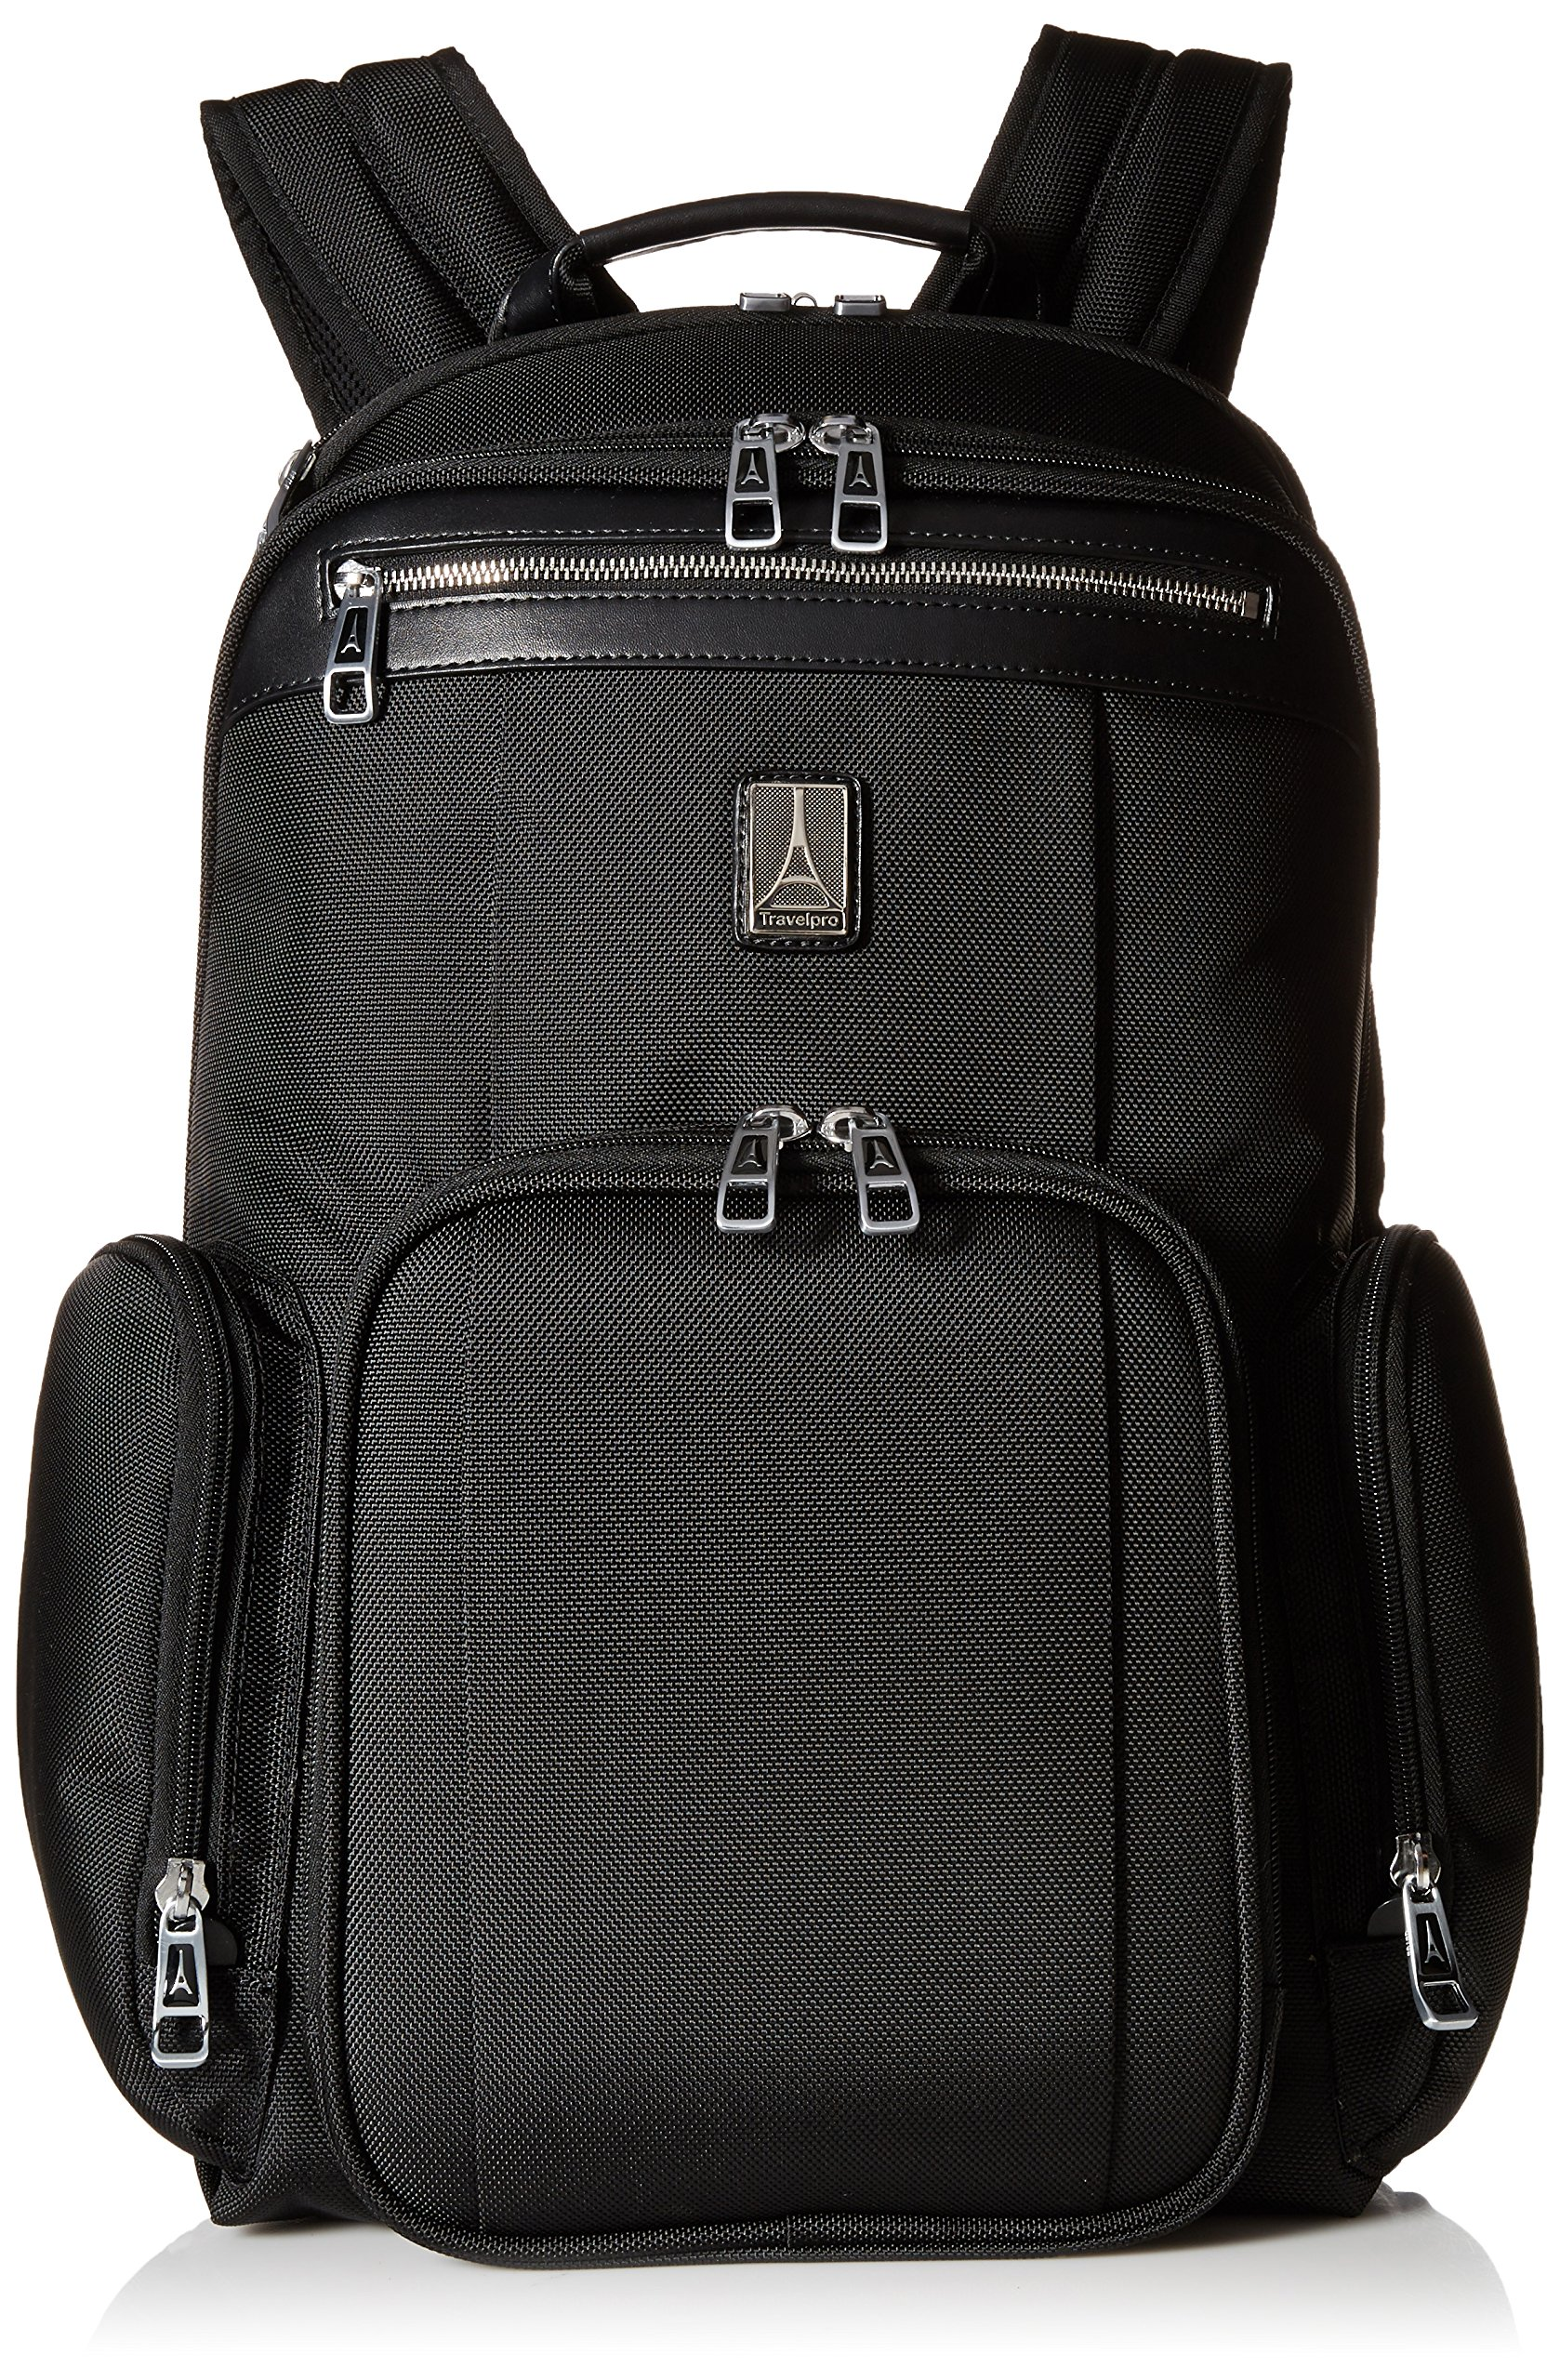 Travelpro Platinum Magna 2 Check Point Friendly Business Backpack, Black, One Size by Travelpro